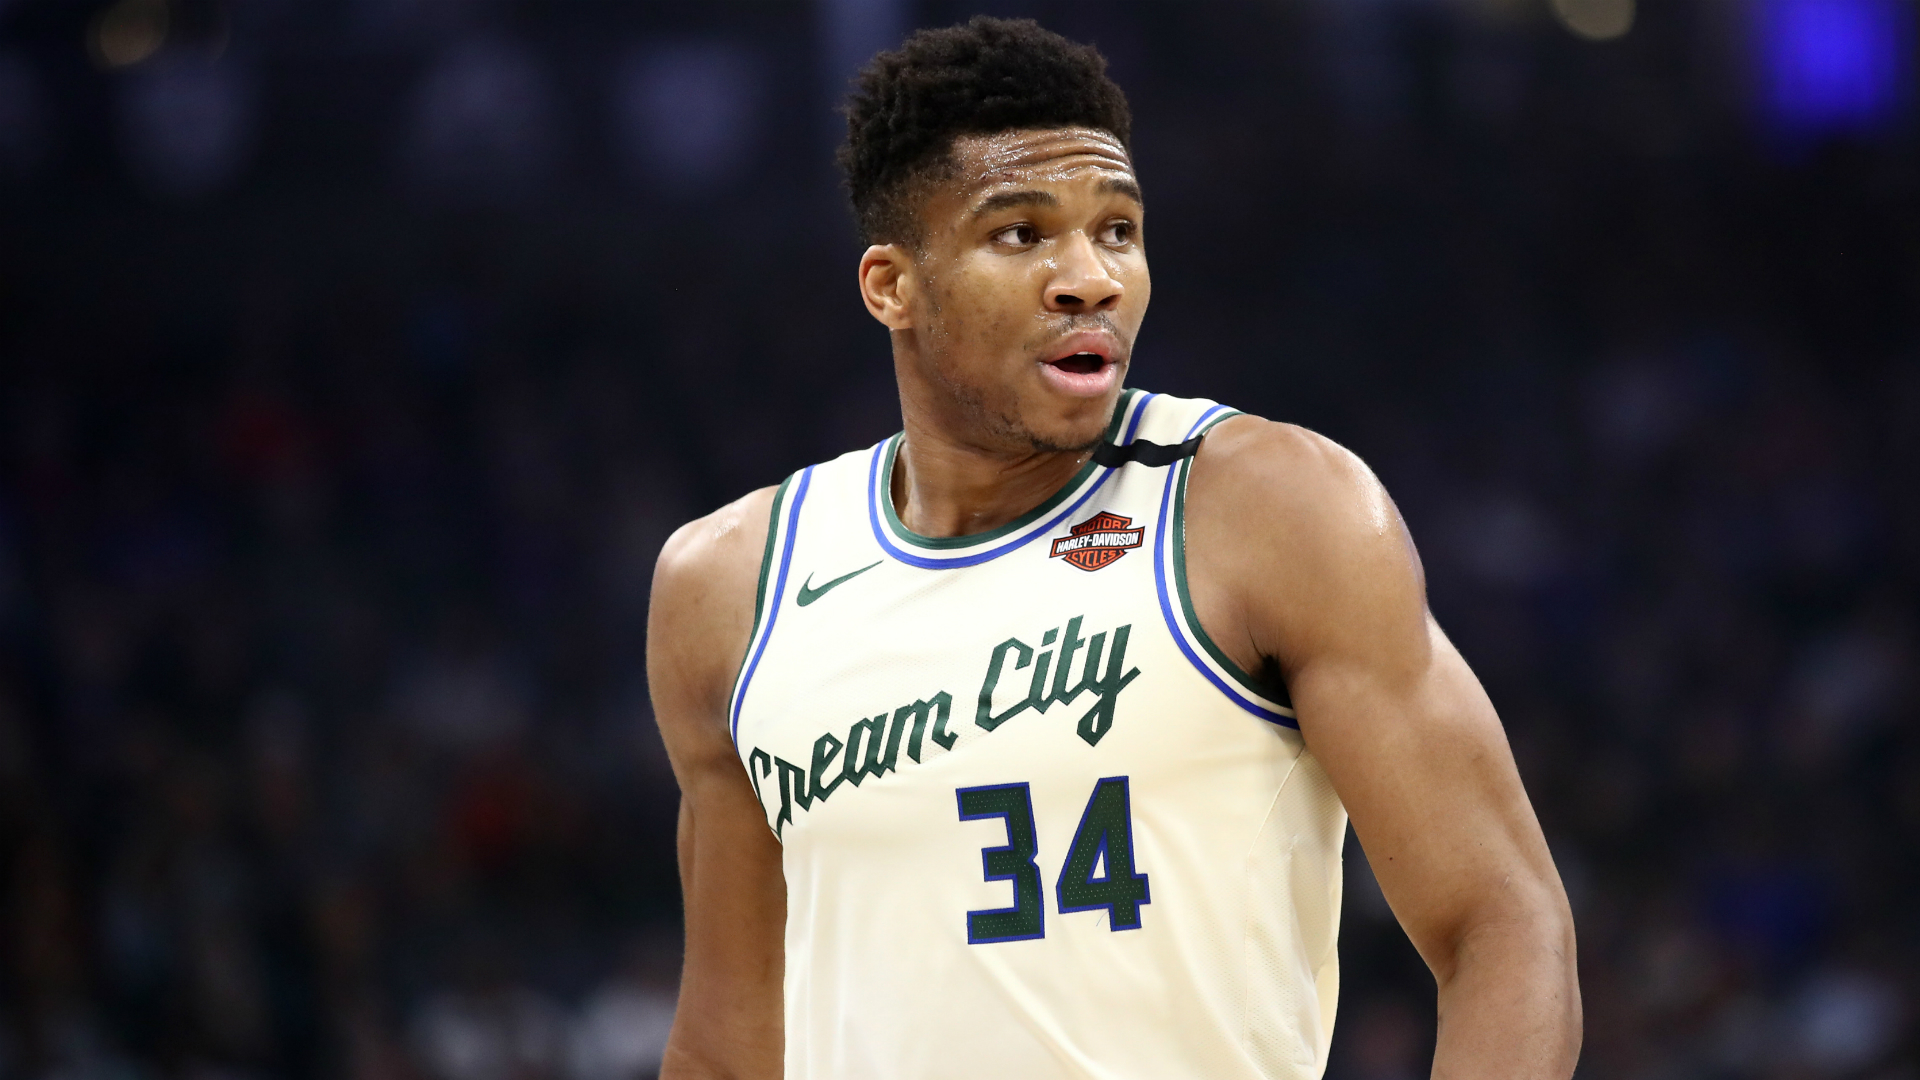 Giannis Antetokounmpo only played three quarters but still scored 37 points to lead the Milwaukee Bucks past the New York Knicks.